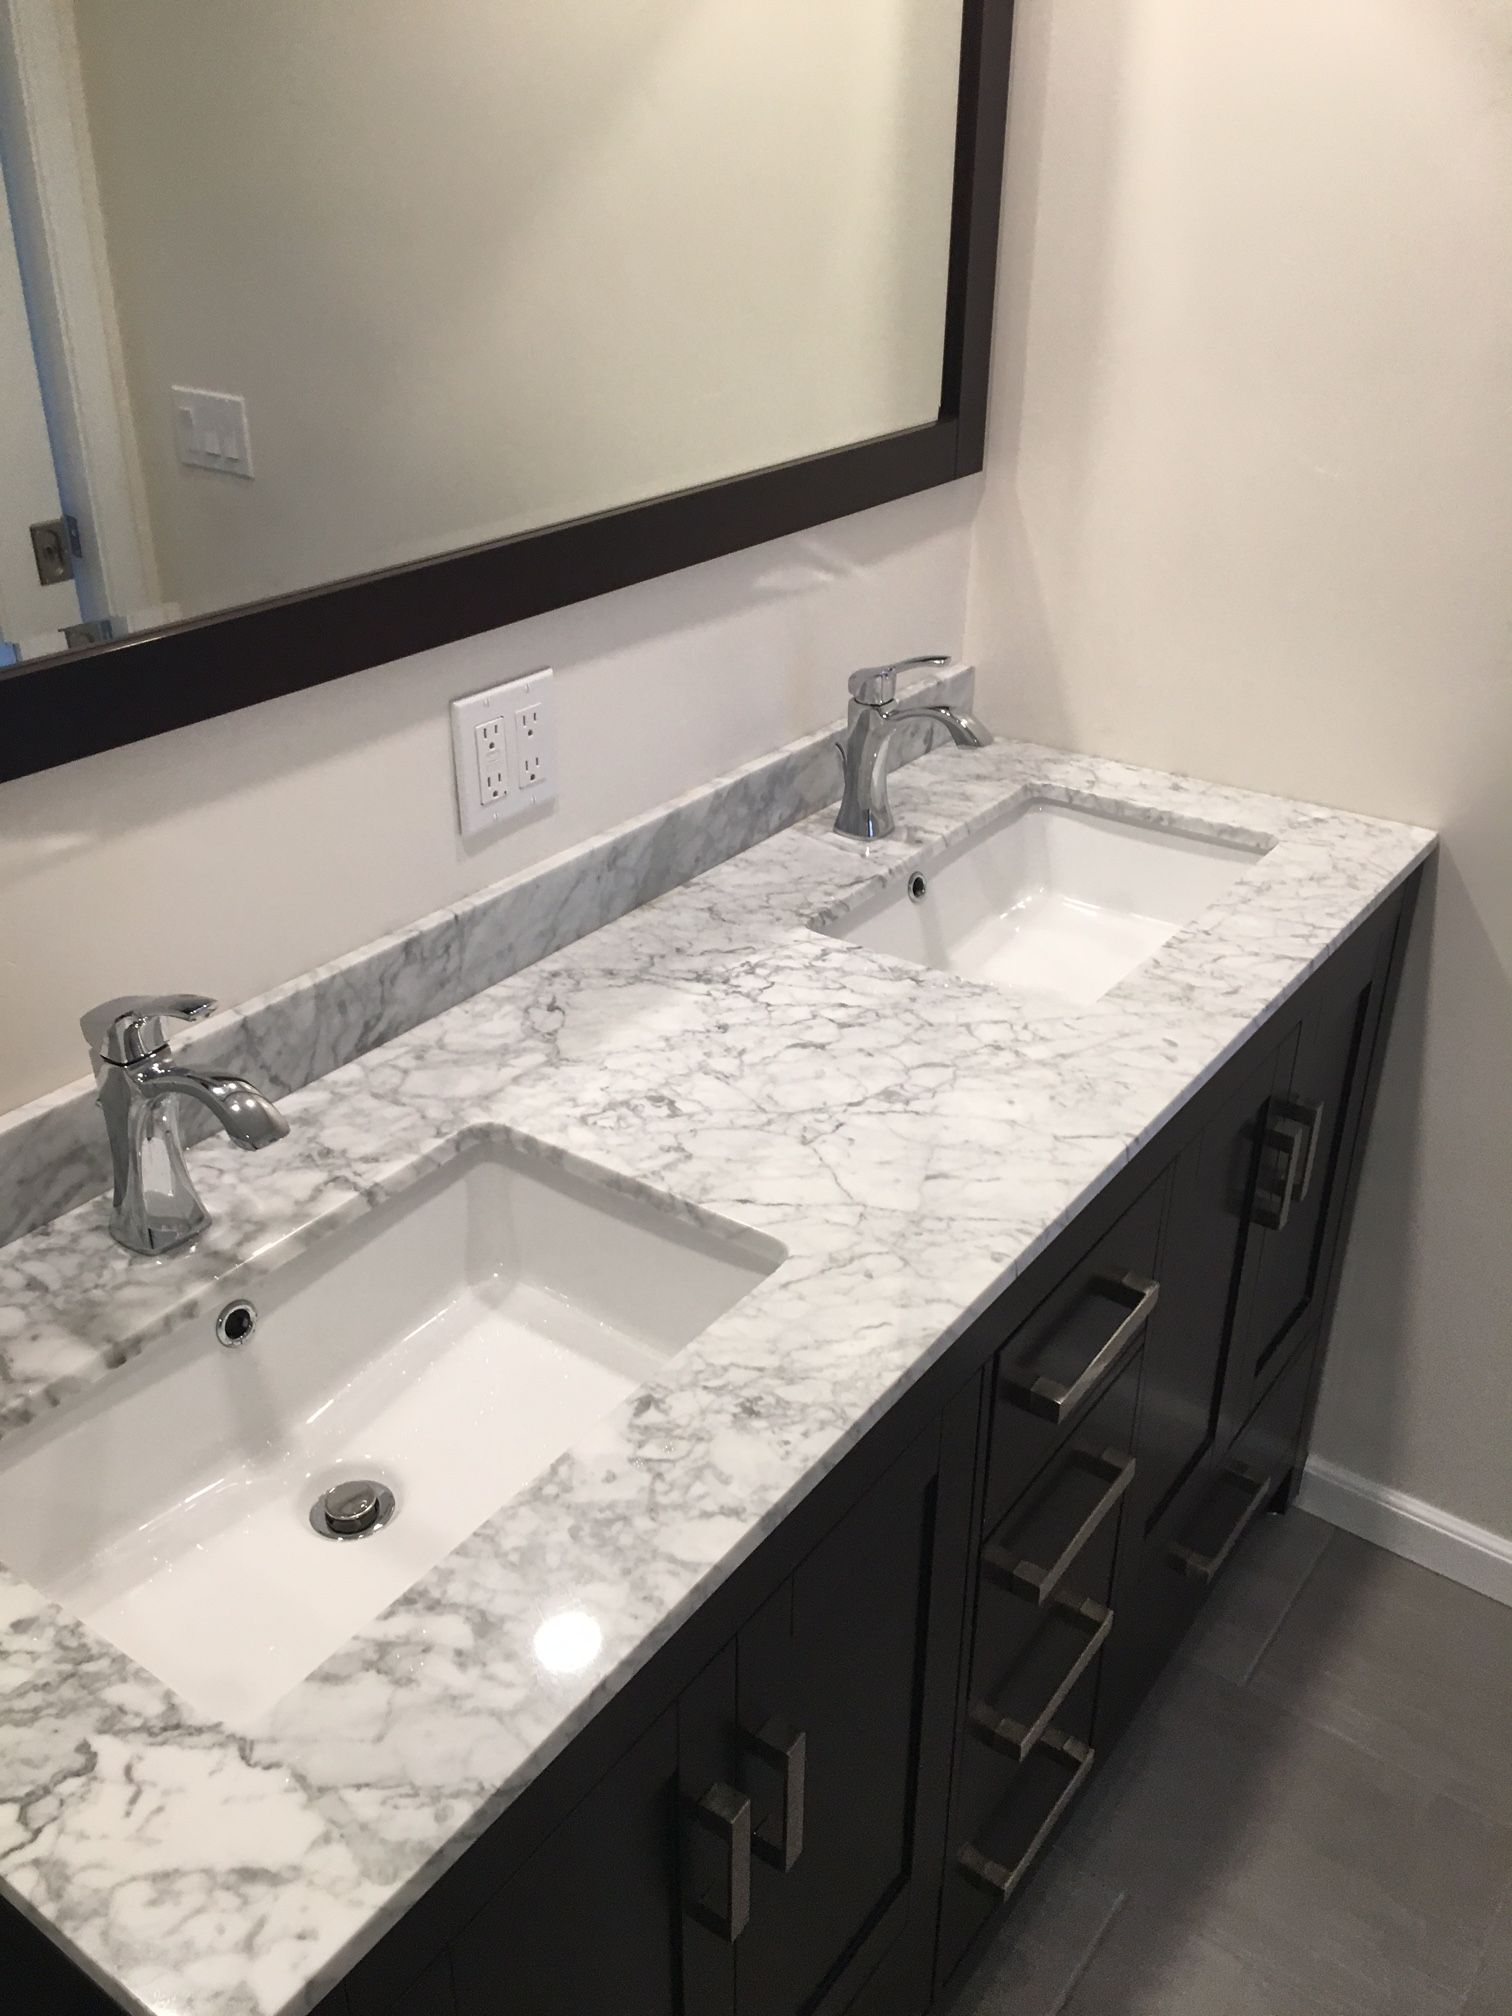 Jk Wood Construction Porcelain Shower Walls And Floor Carrara Marble Bench And Countertop And Accent Countertops Shower Wall Sink Countertop